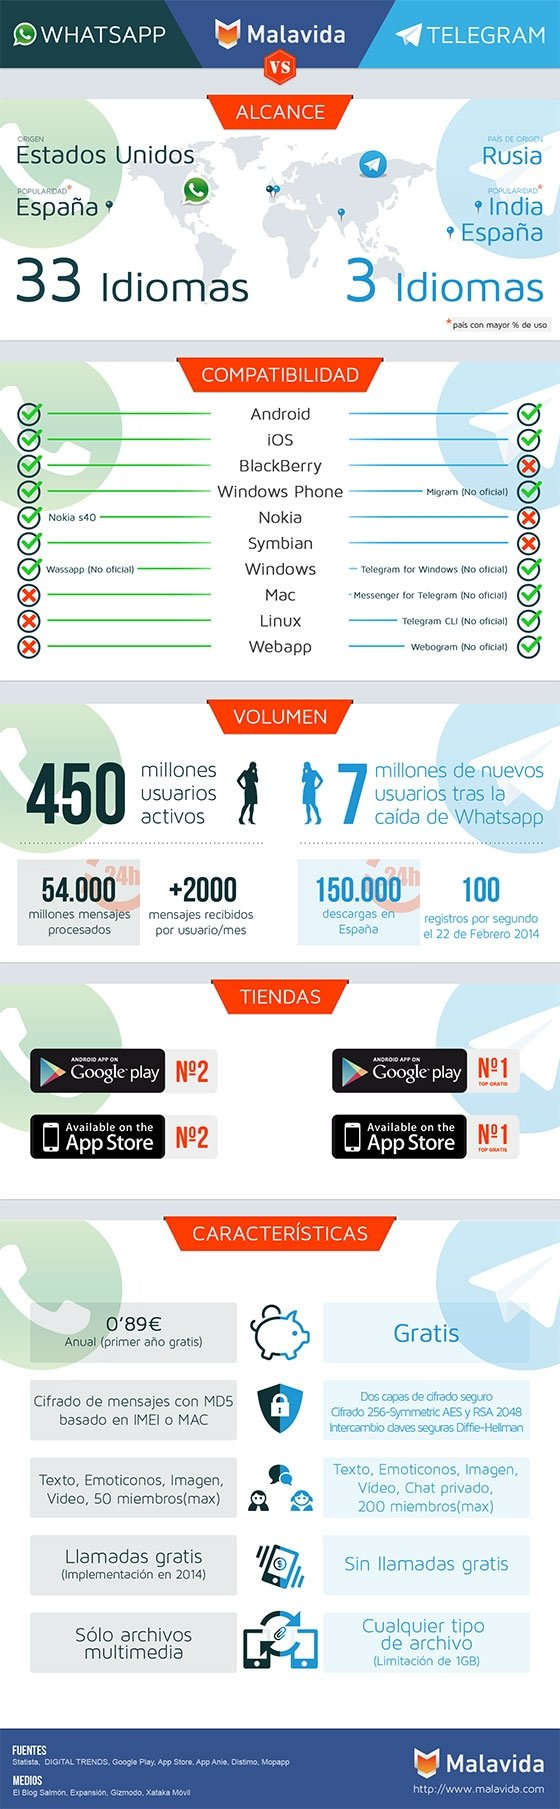 Volumen de usuarios y datos de WhatsApp y Telegram